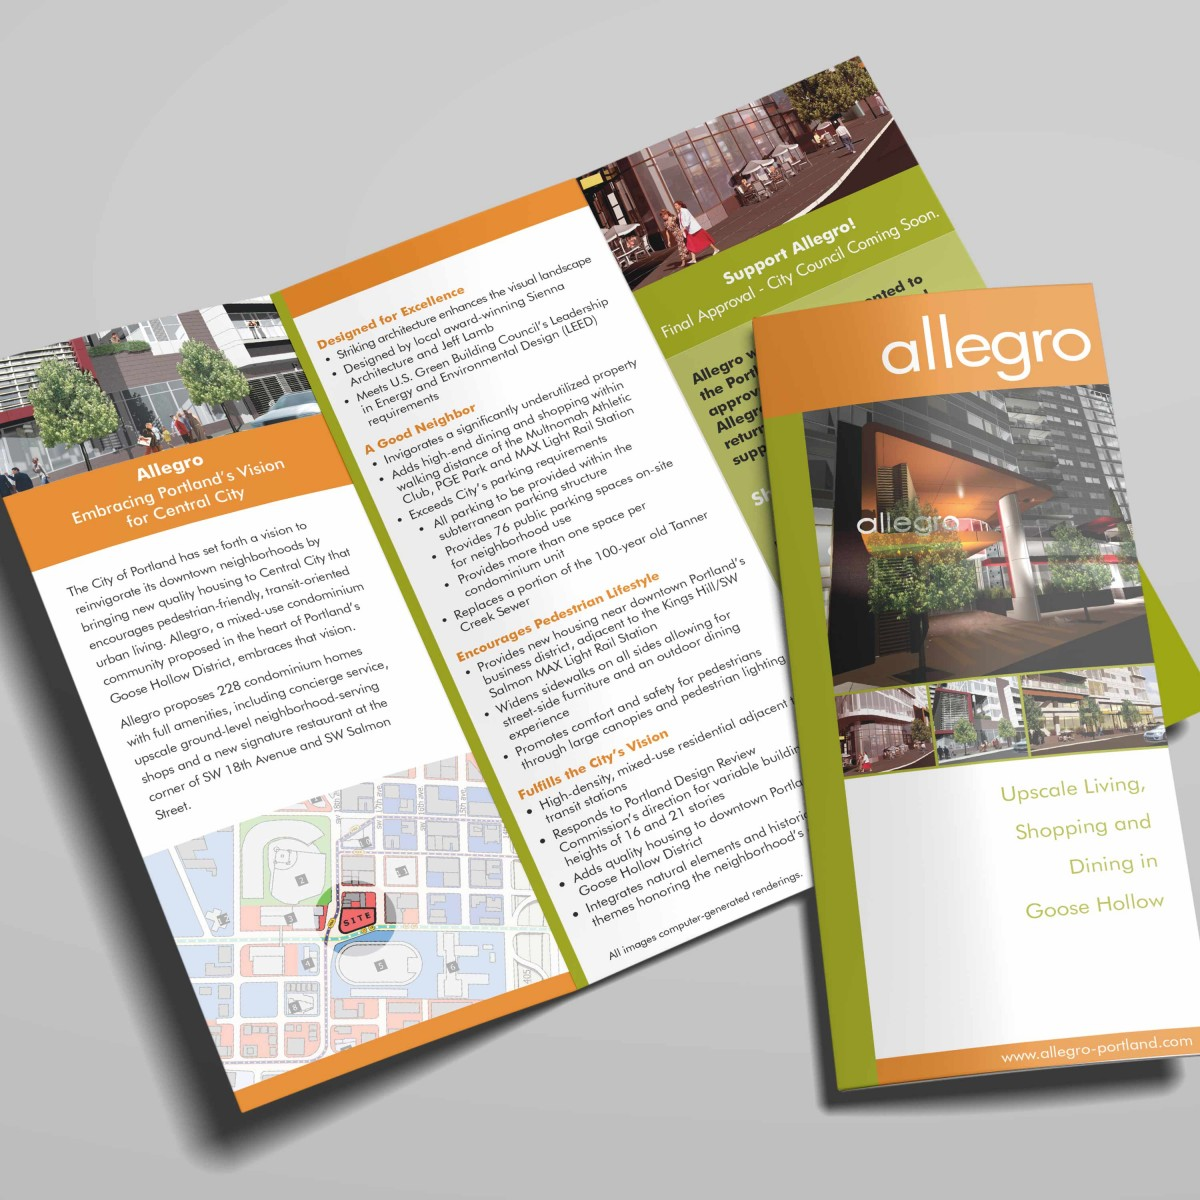 Allegro mixed use development tri-fold brochure interior and cover